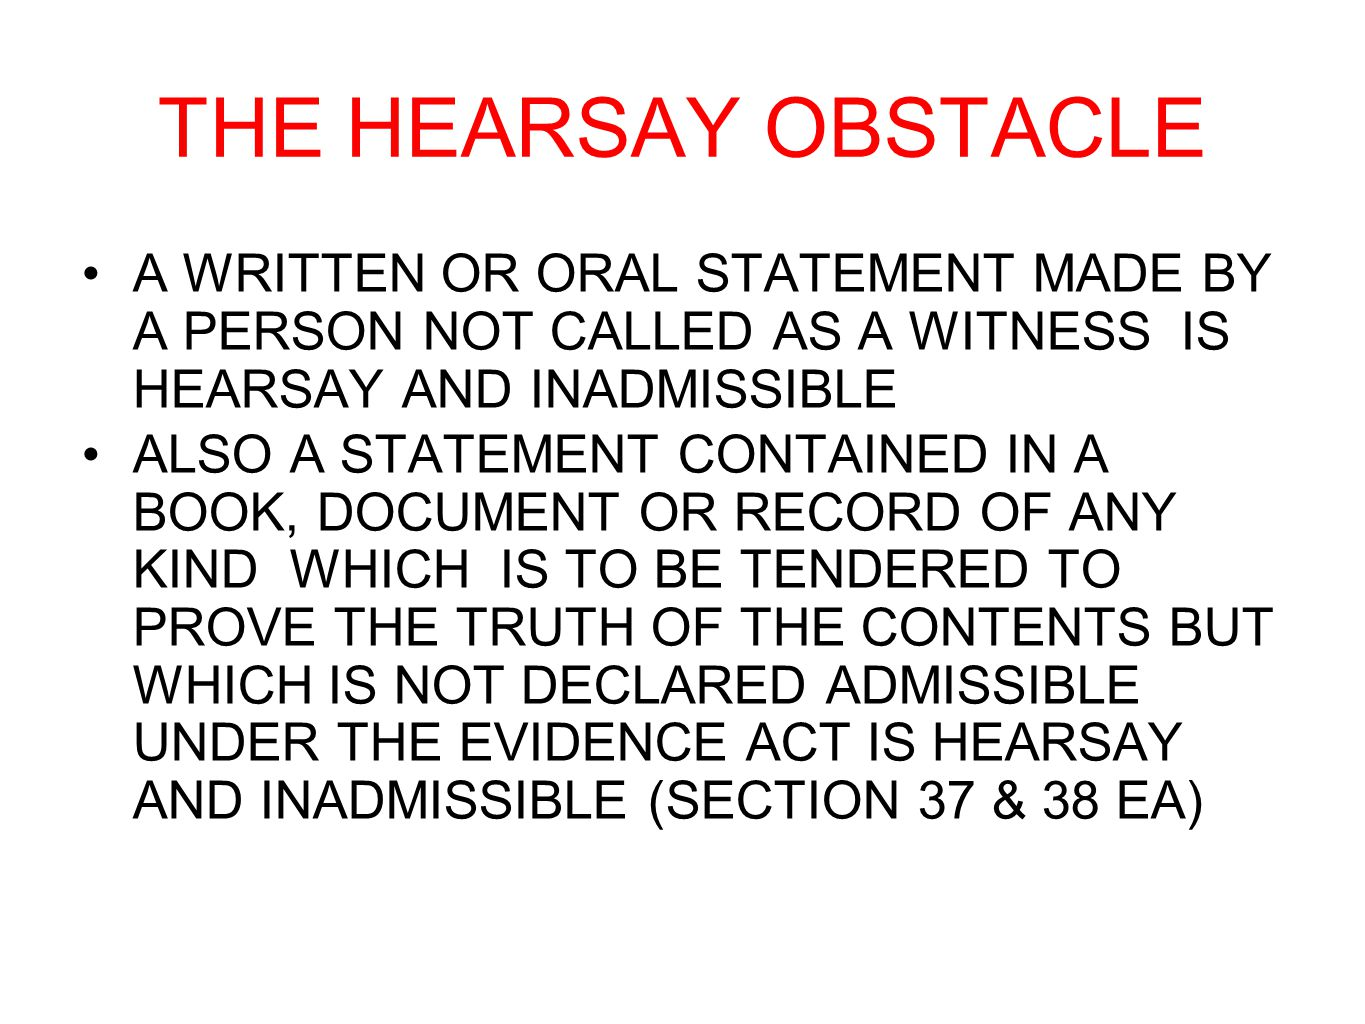 THE HEARSAY OBSTACLE A WRITTEN OR ORAL STATEMENT MADE BY A PERSON NOT CALLED AS A WITNESS IS HEARSAY AND INADMISSIBLE ALSO A STATEMENT CONTAINED IN A